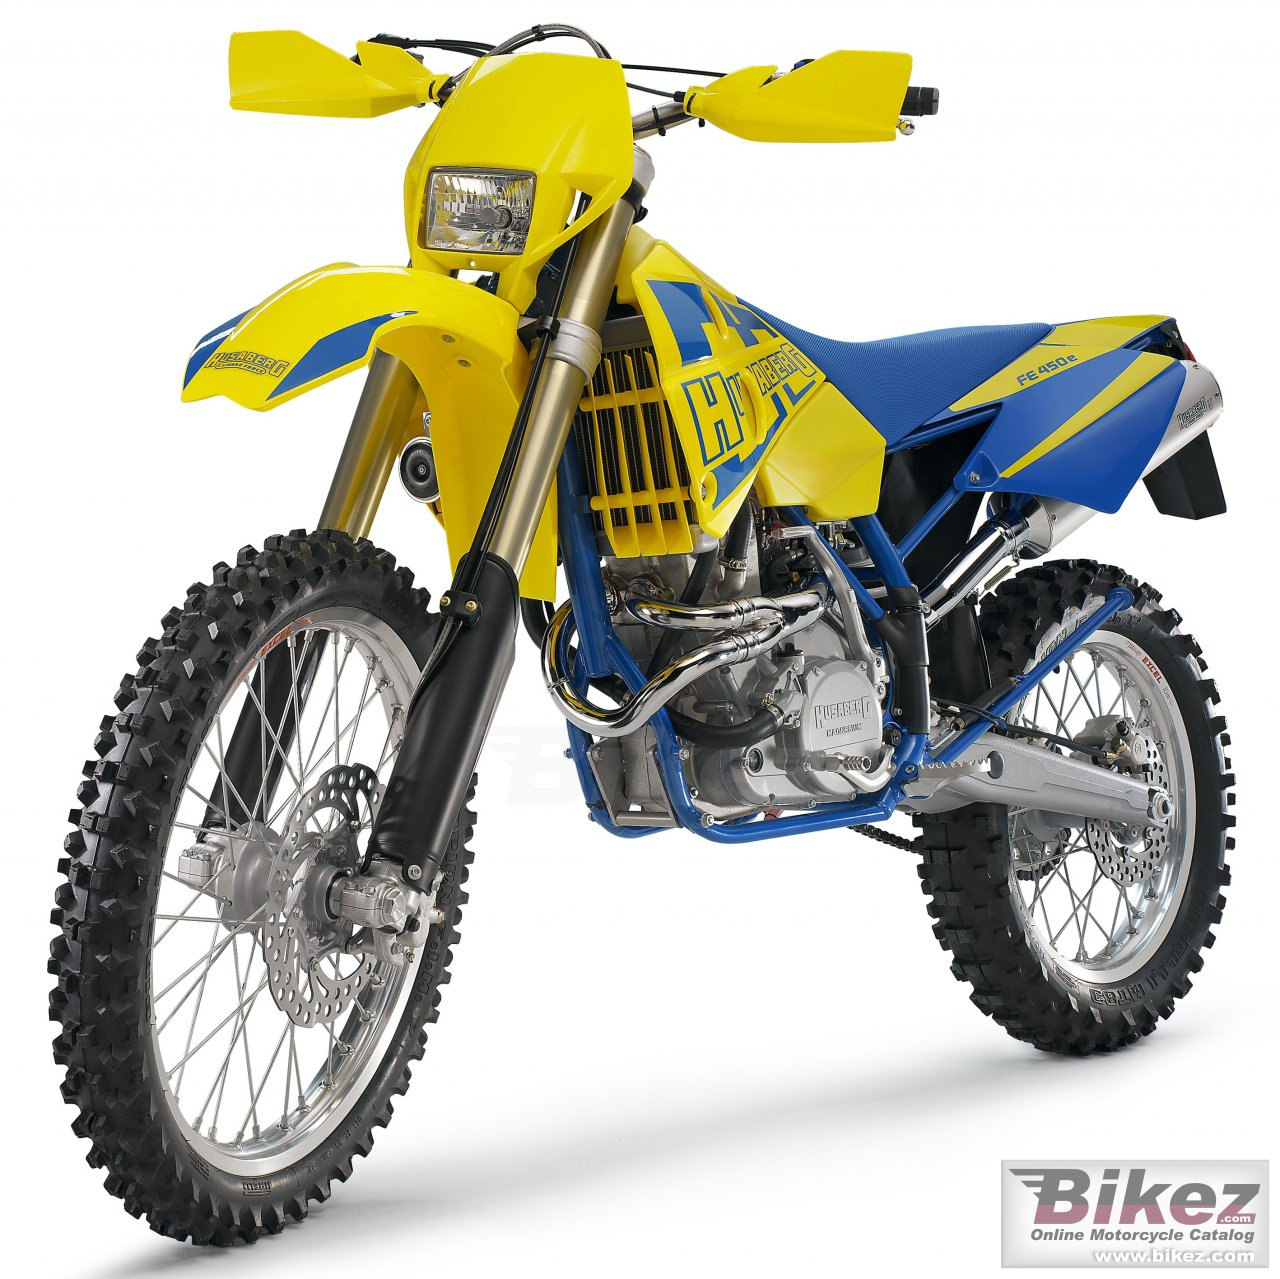 Big Husaberg fe 450 e picture and wallpaper from Bikez.com